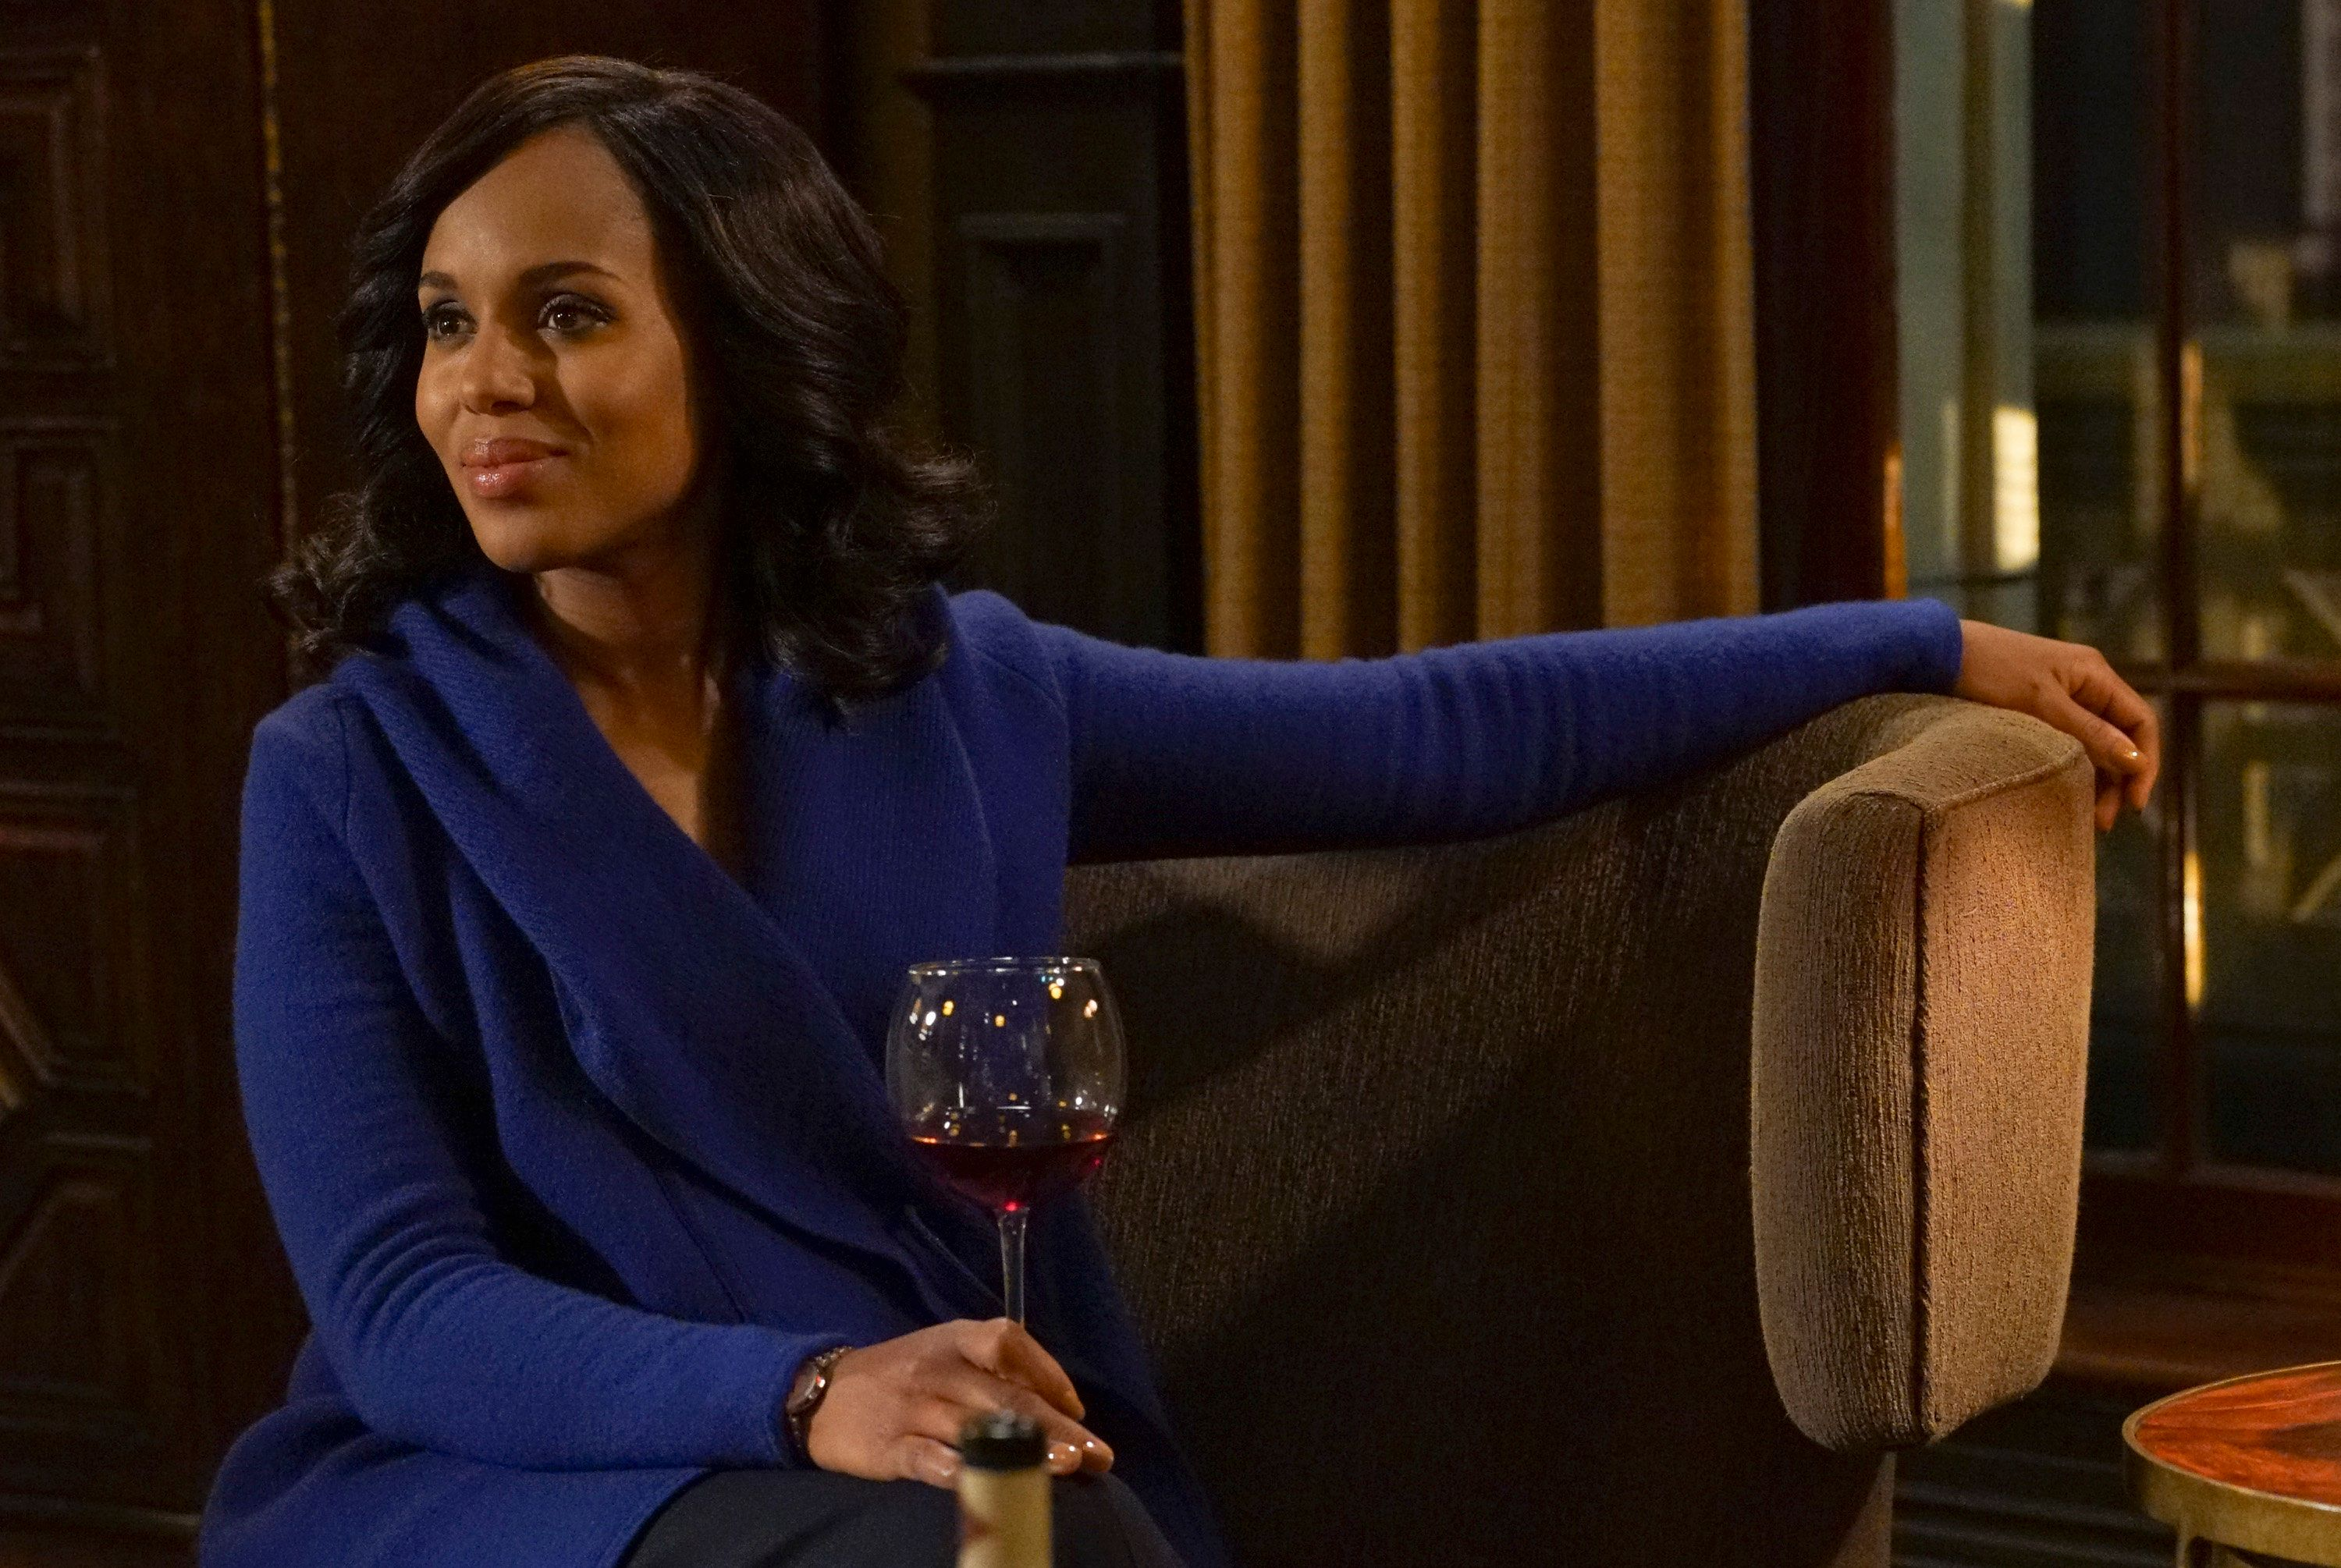 SCANDAL - 'Trump Card' - Olivia and Abby have to put their differences aside and work together to try and take Hollis Doyle down.  Meanwhile, Edison realizes he may have made a deal with the devil as Rowan and Jake continue to try and pull the strings behind his campaign, on the penultimate episode of ABC's 'Scandal,' THURSDAY, MAY 5 (9:00-10:00 p.m. EDT), on the ABC Television Network. (Photo by Byron Cohen/ABC via Getty Images) KERRY WASHINGTON